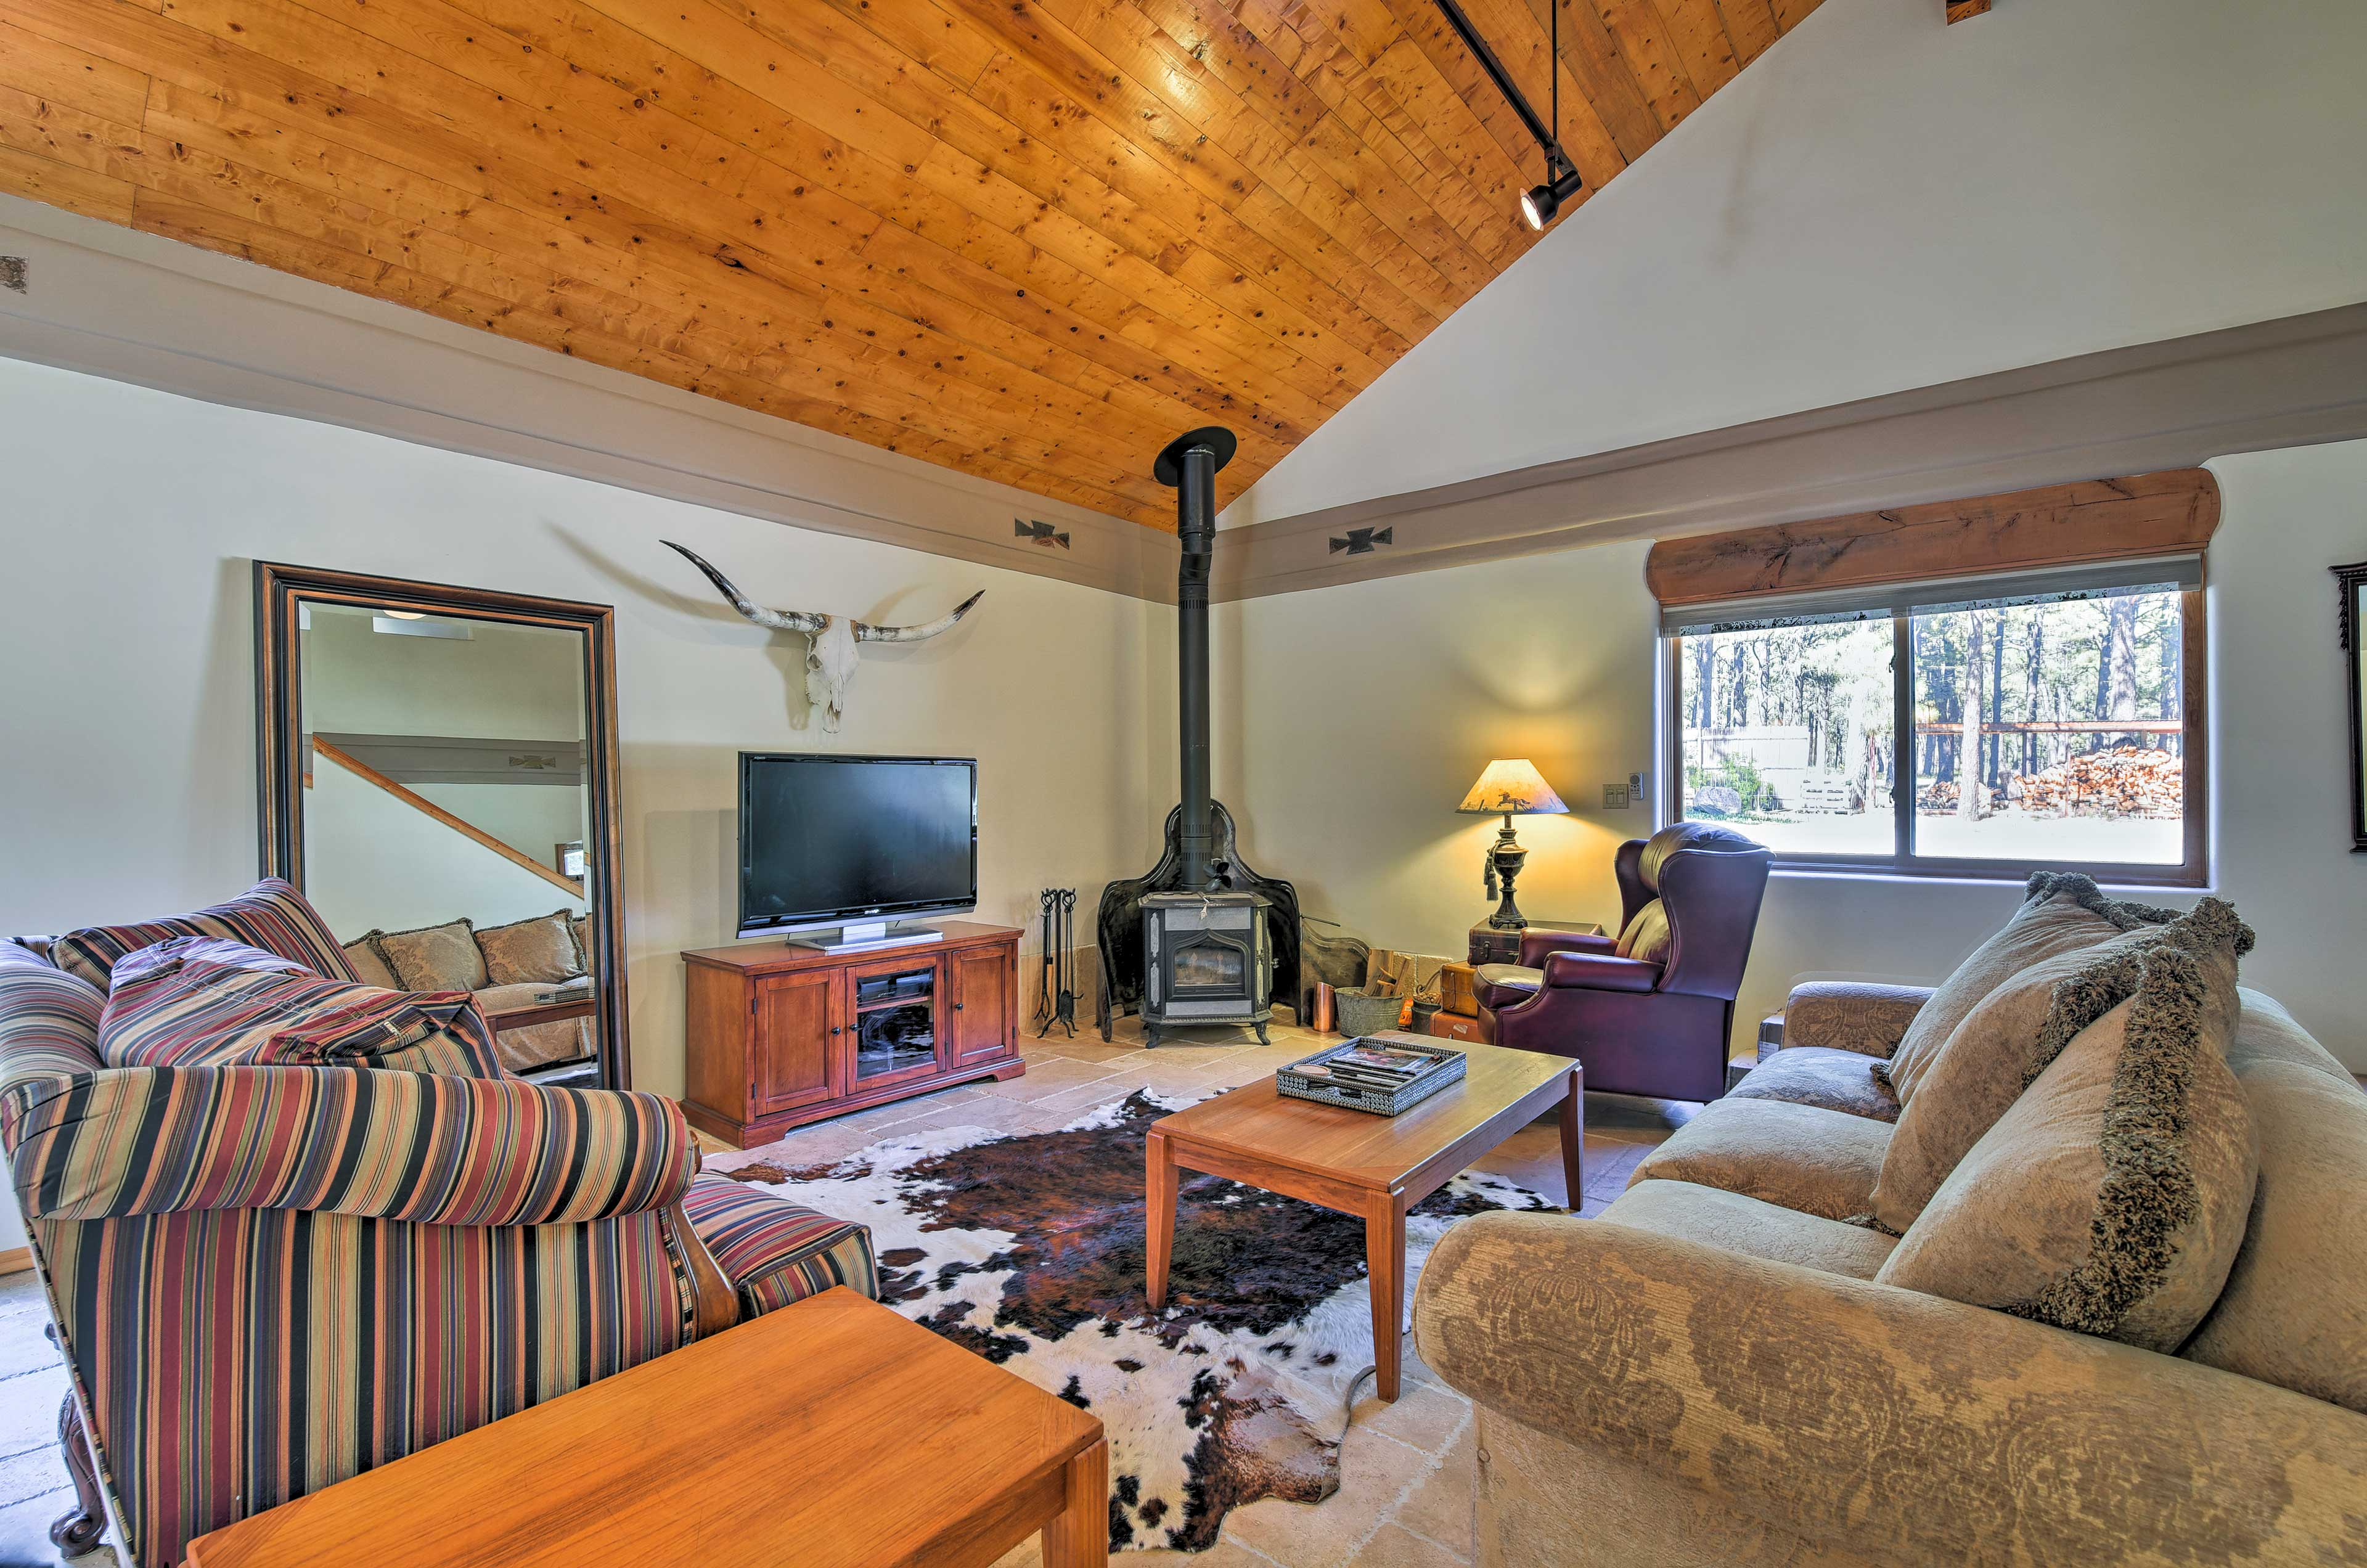 Unwind on the comfortable seating and stay cozy by the wood-burning fireplace.